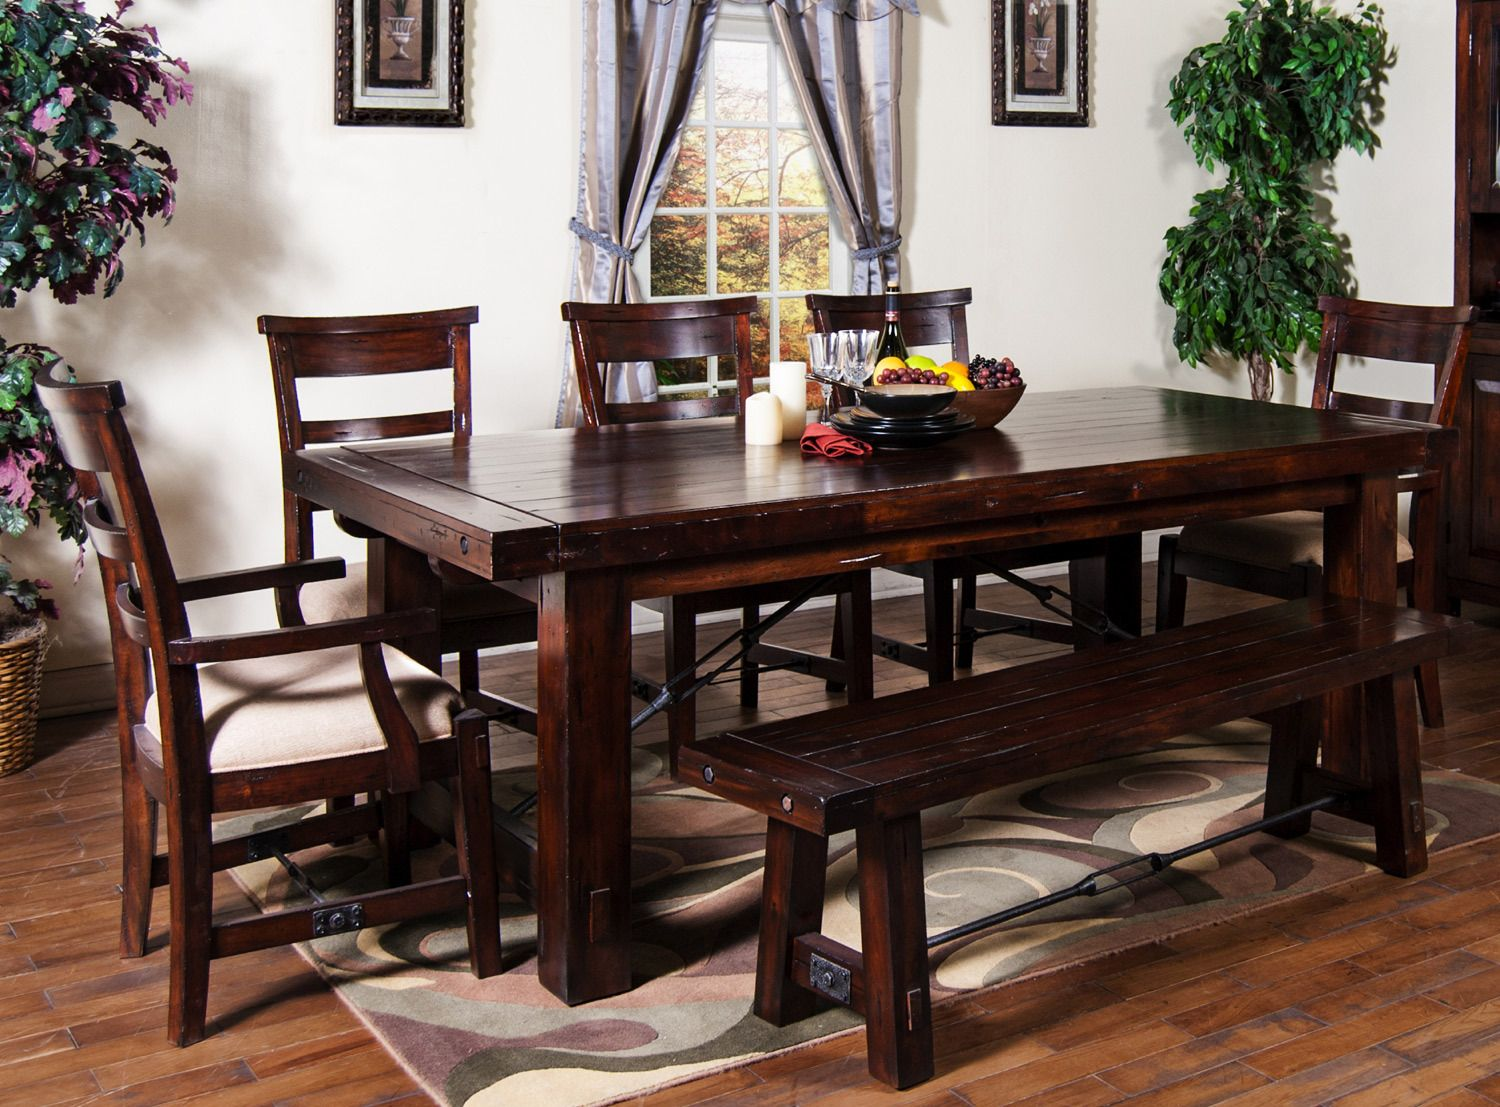 Vineyard Extension Table Dining Room Set Sunny Designs Furniture Home Gallery Stores Dining Room Table Set Rustic Kitchen Tables Unique Dining Tables